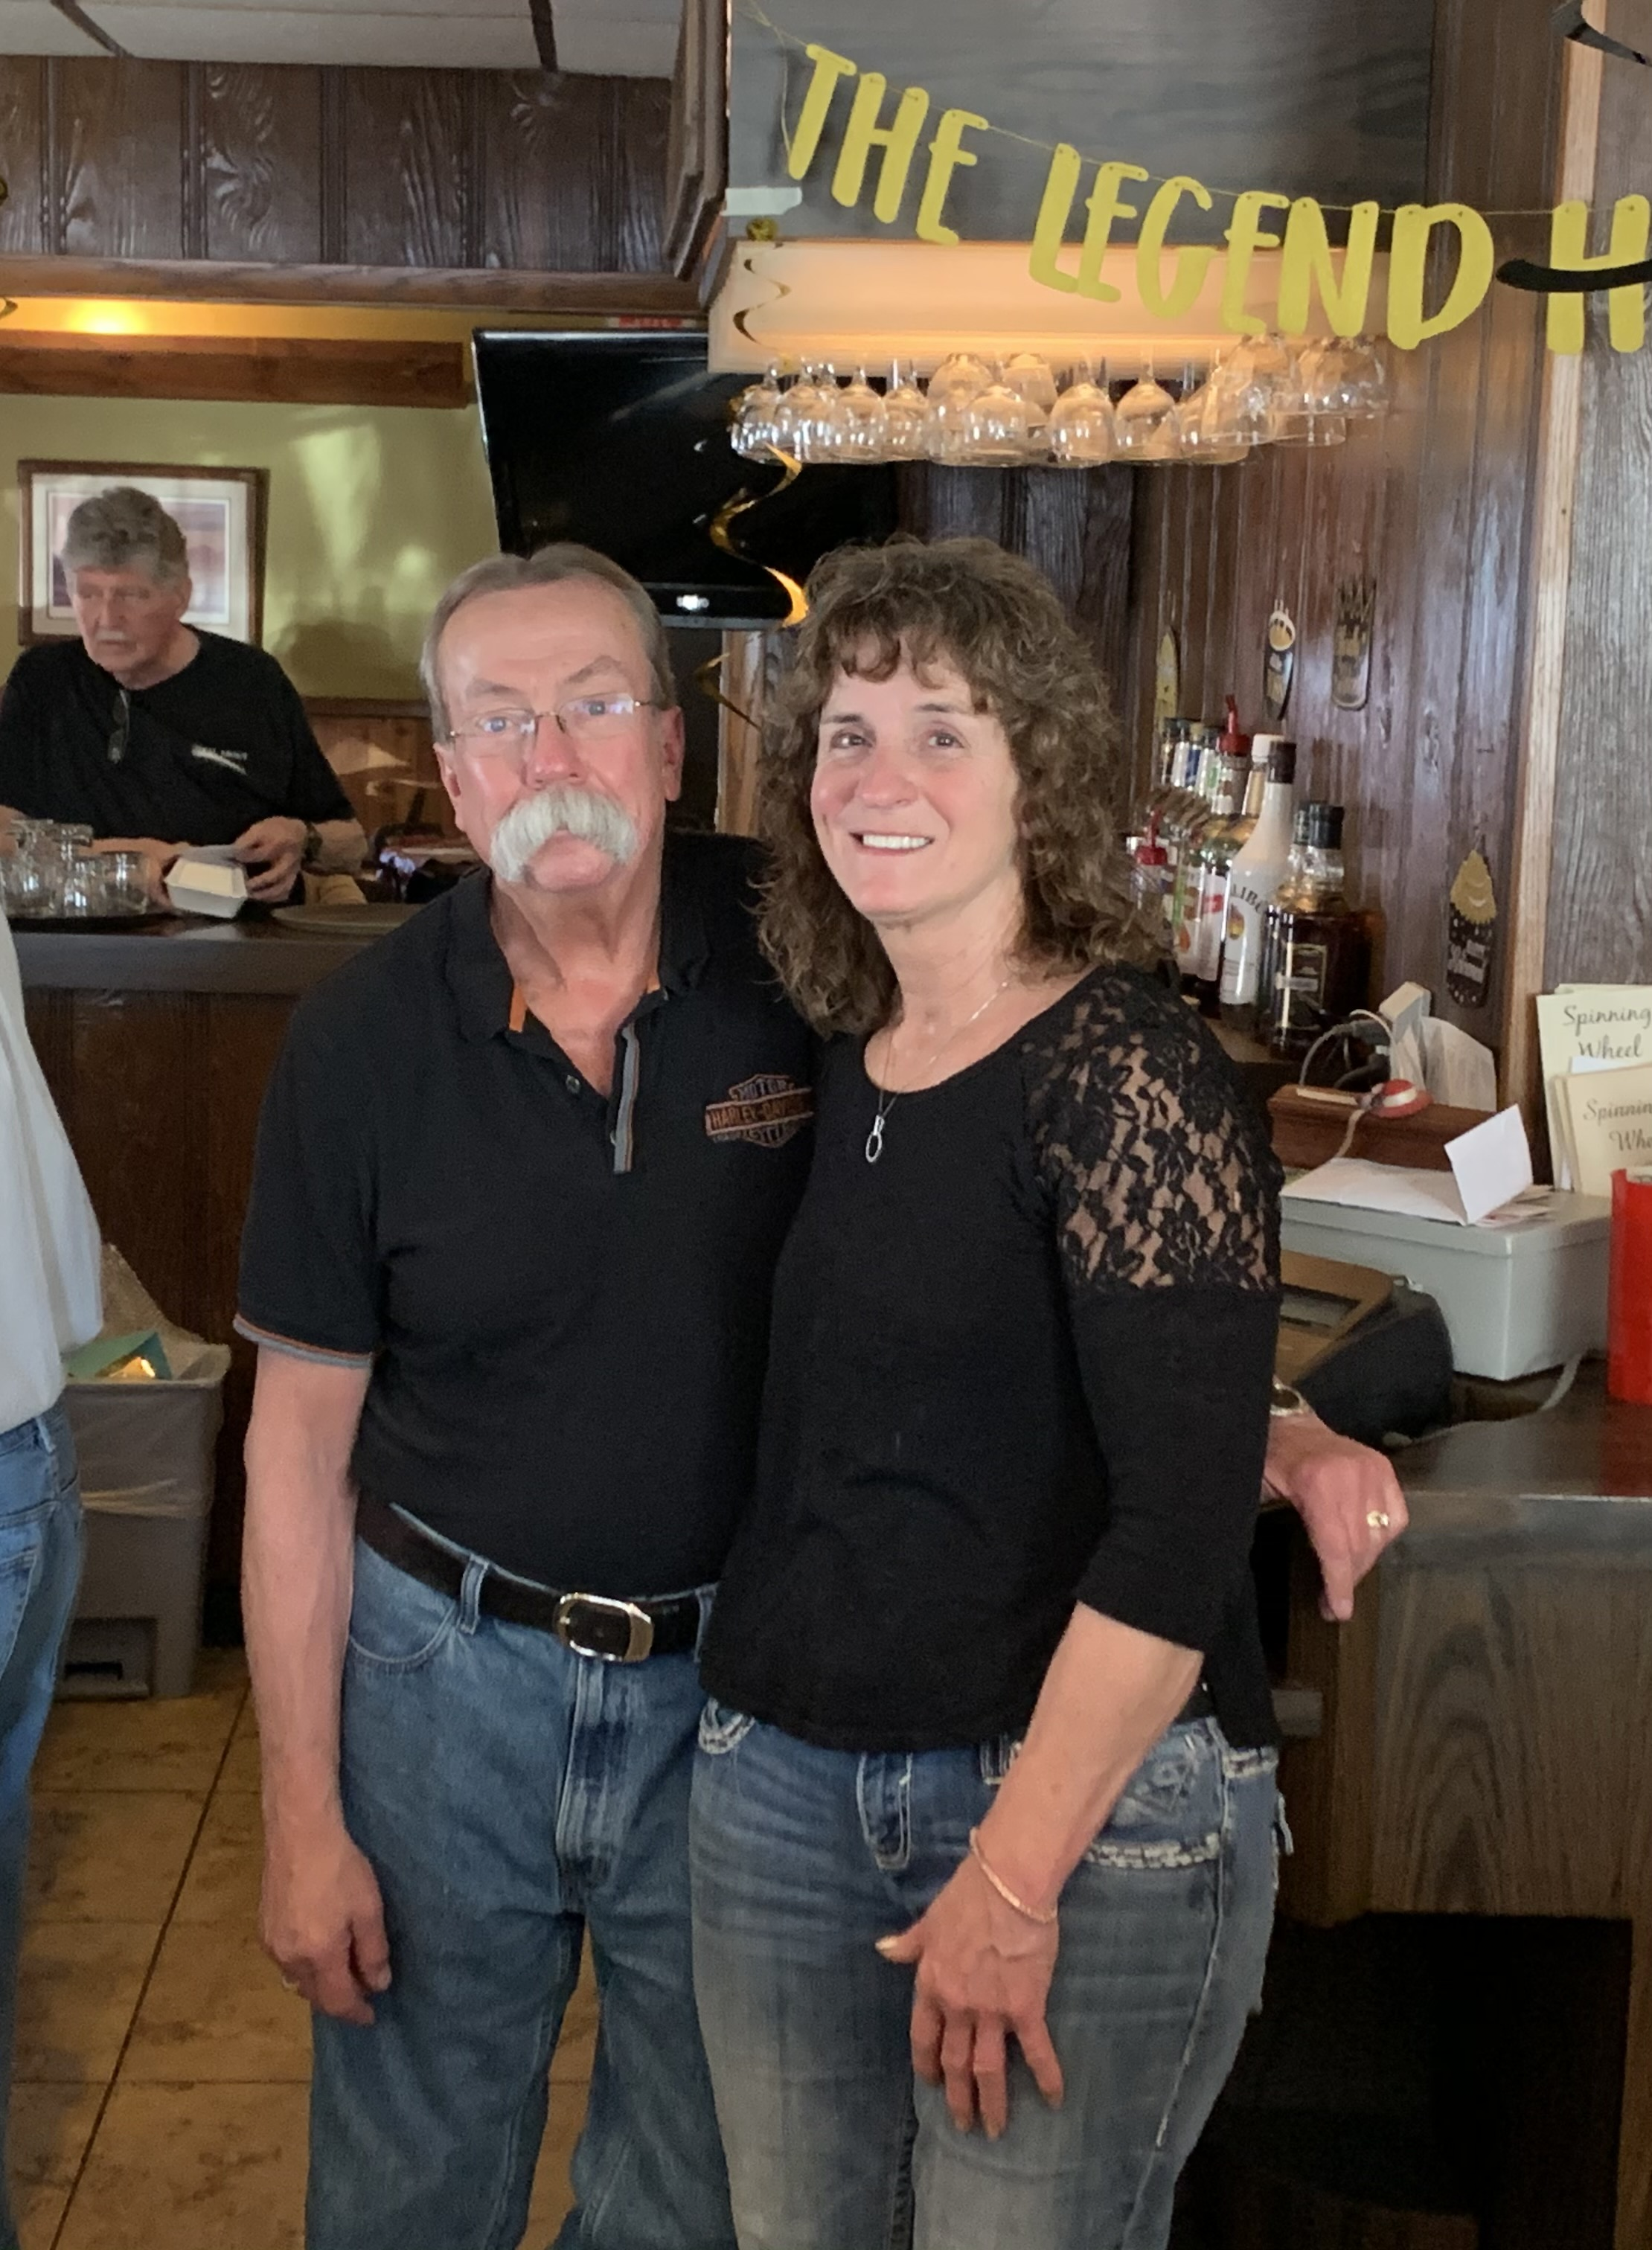 Steve Lemhouse mentioned that his favorite memory was meeting Lisa while the two worked together at the Spinning Wheel. Steve and Lisa have been married for 17 years and on April 29, they hosted their last dinner service at the Spinning Wheel Inn.Luke Reimer | NEW Media